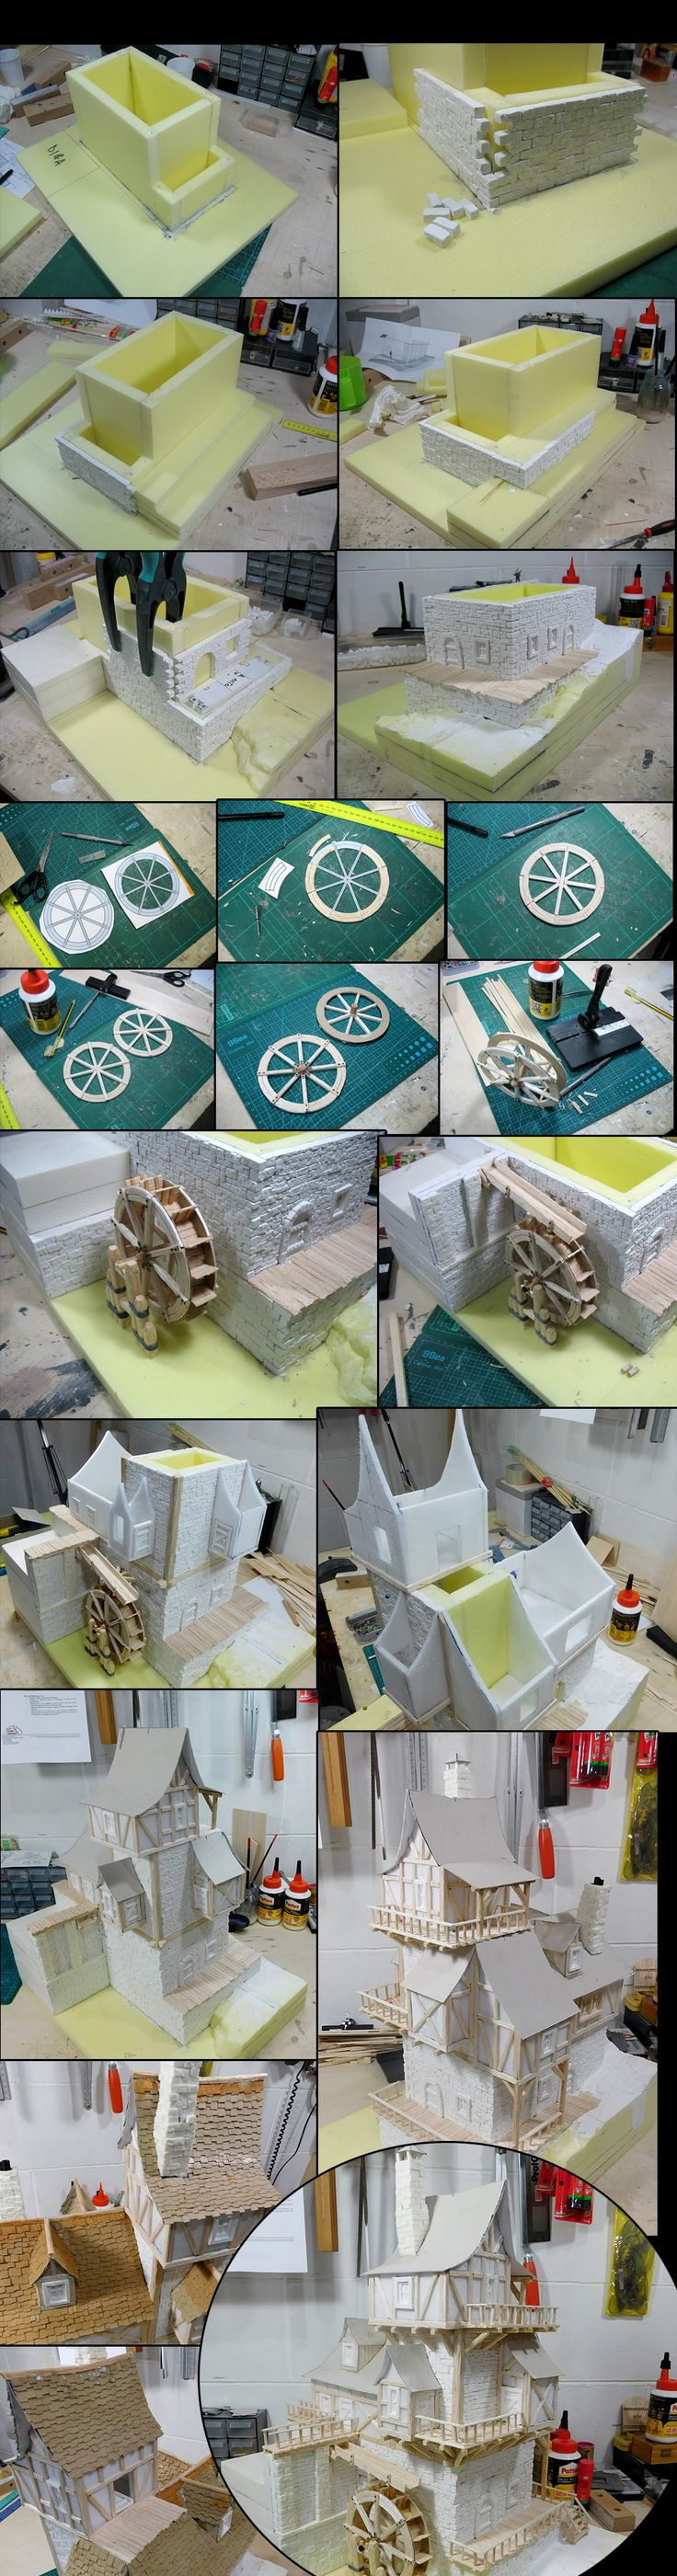 The WaterMill W.I.P.